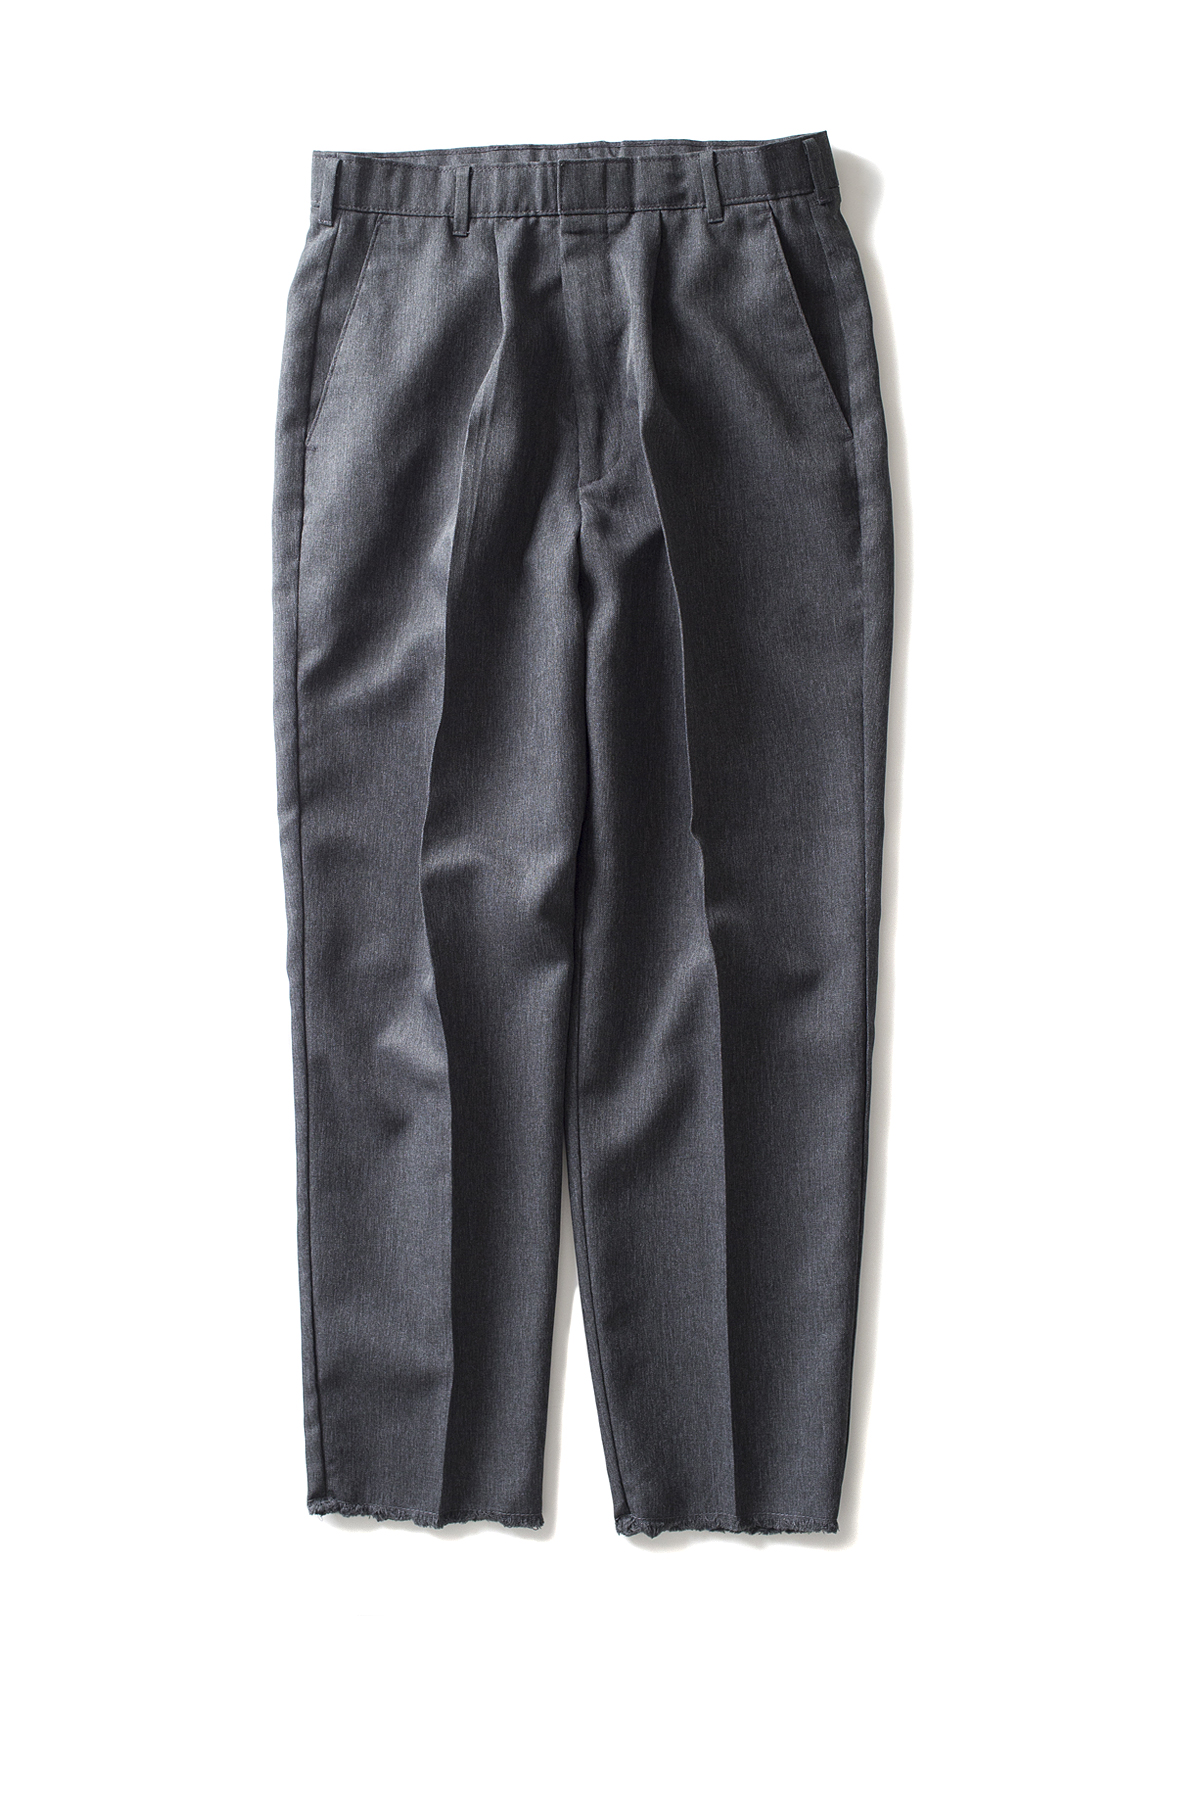 HEXICO : Deformer Ex. Action Slacks 1-Tuck Trousers (D.Grey)